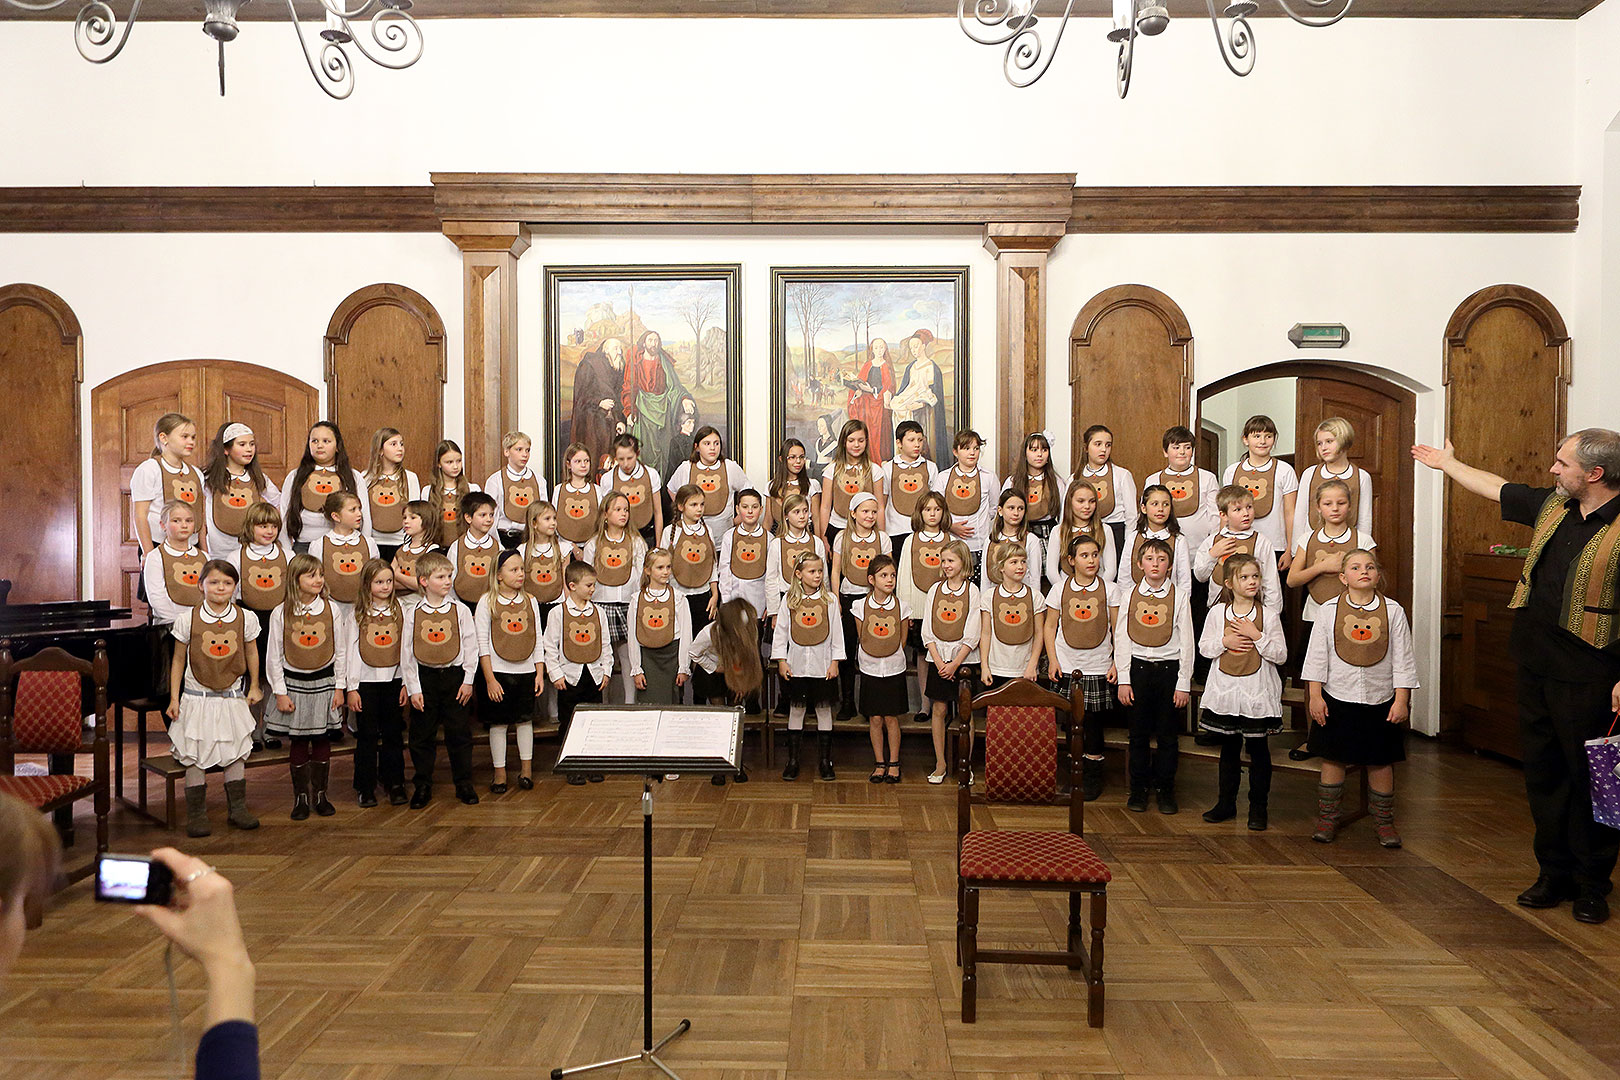 Bringing You the News - Concert by Brumlíci and their guests, Artistic Elementary School Český Krumlov, 19.12.2013